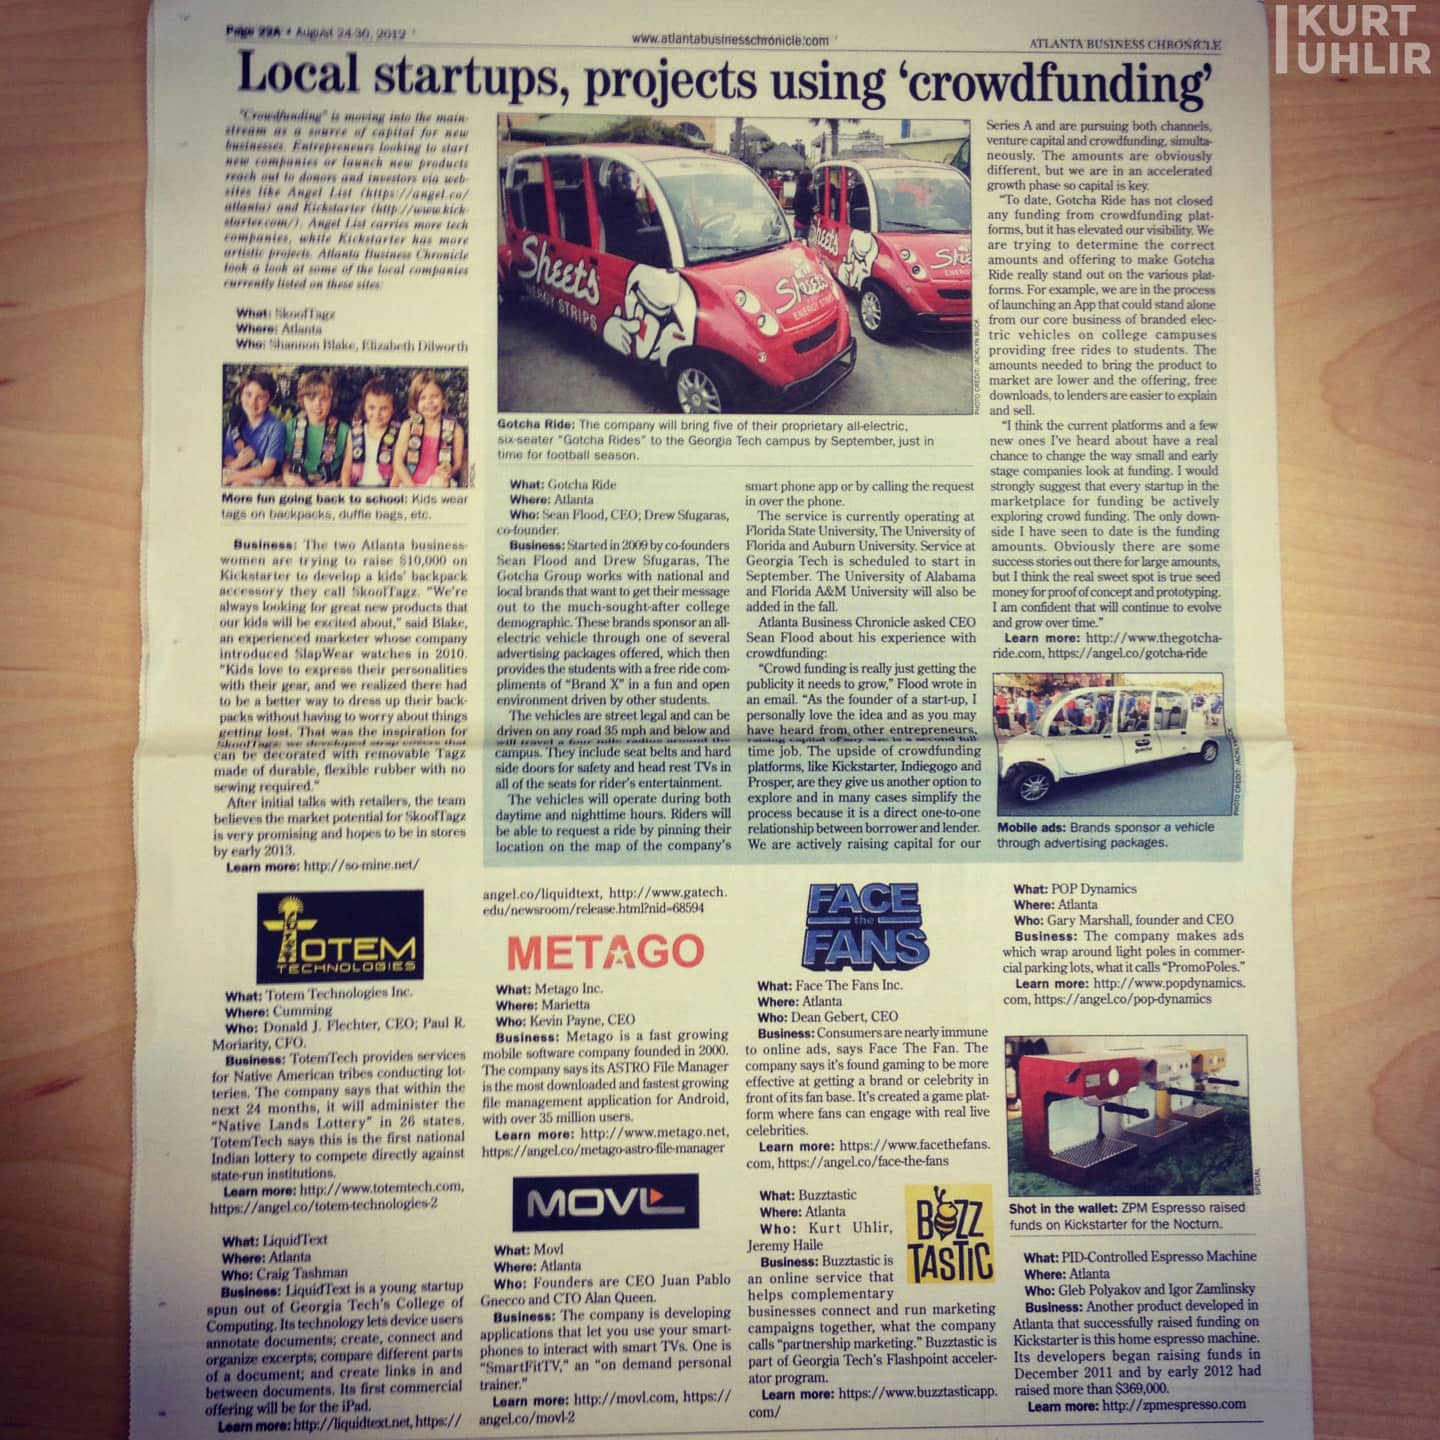 Mention in Atlanta Business Chronicle about funding about funding for Buzztastic (Sideqik)